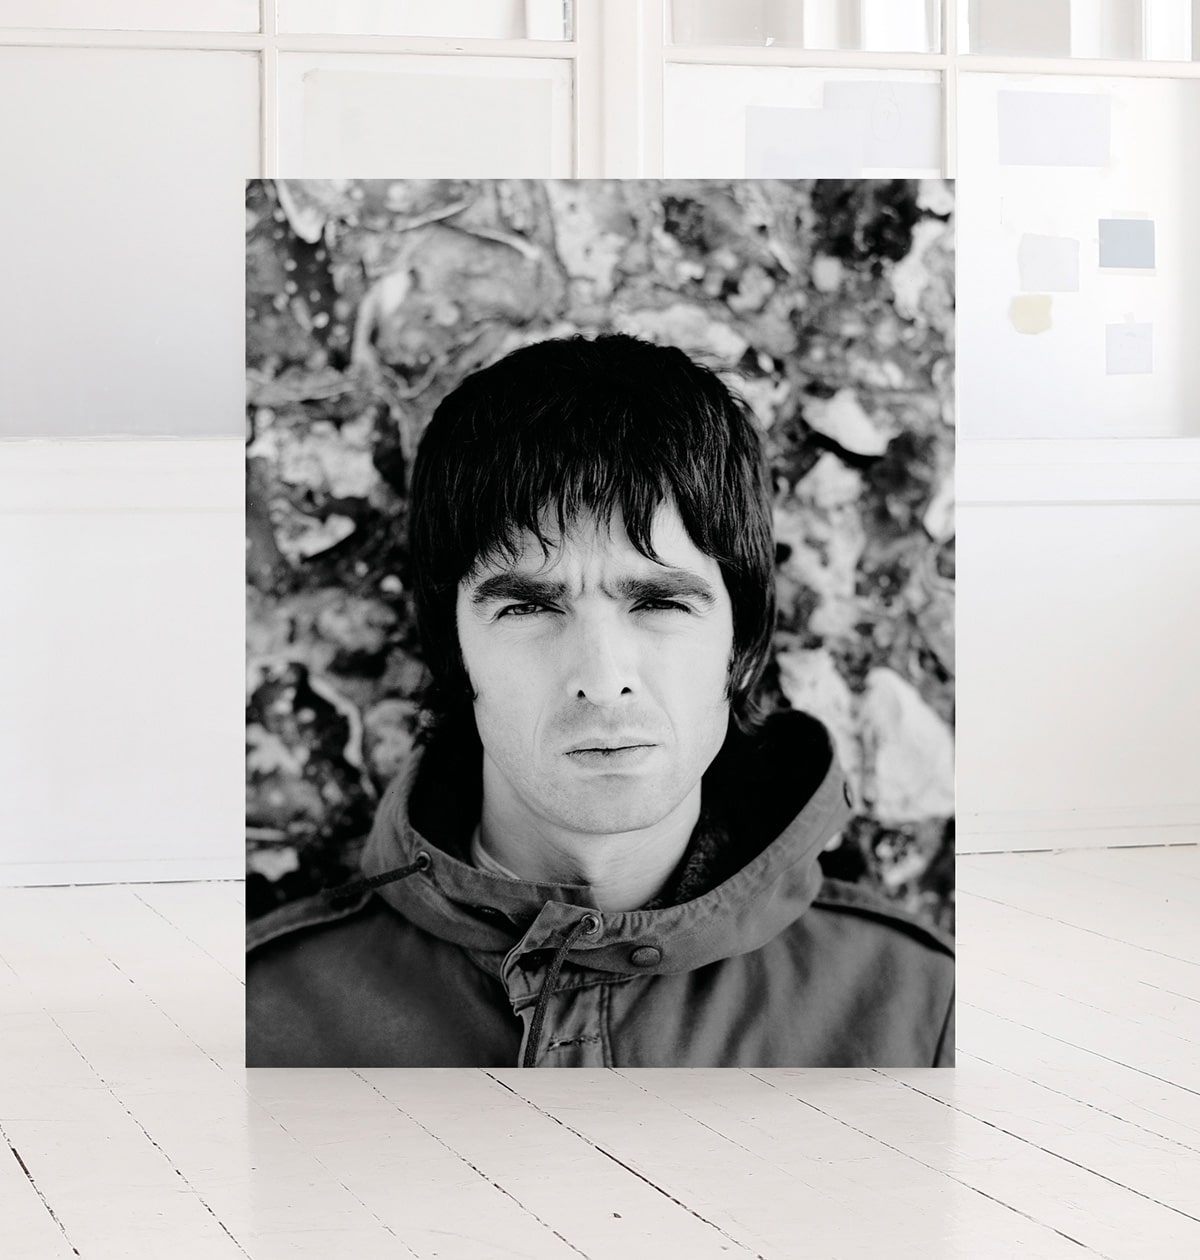 Noel Gallagher, print, by photographer morten larsen photographer